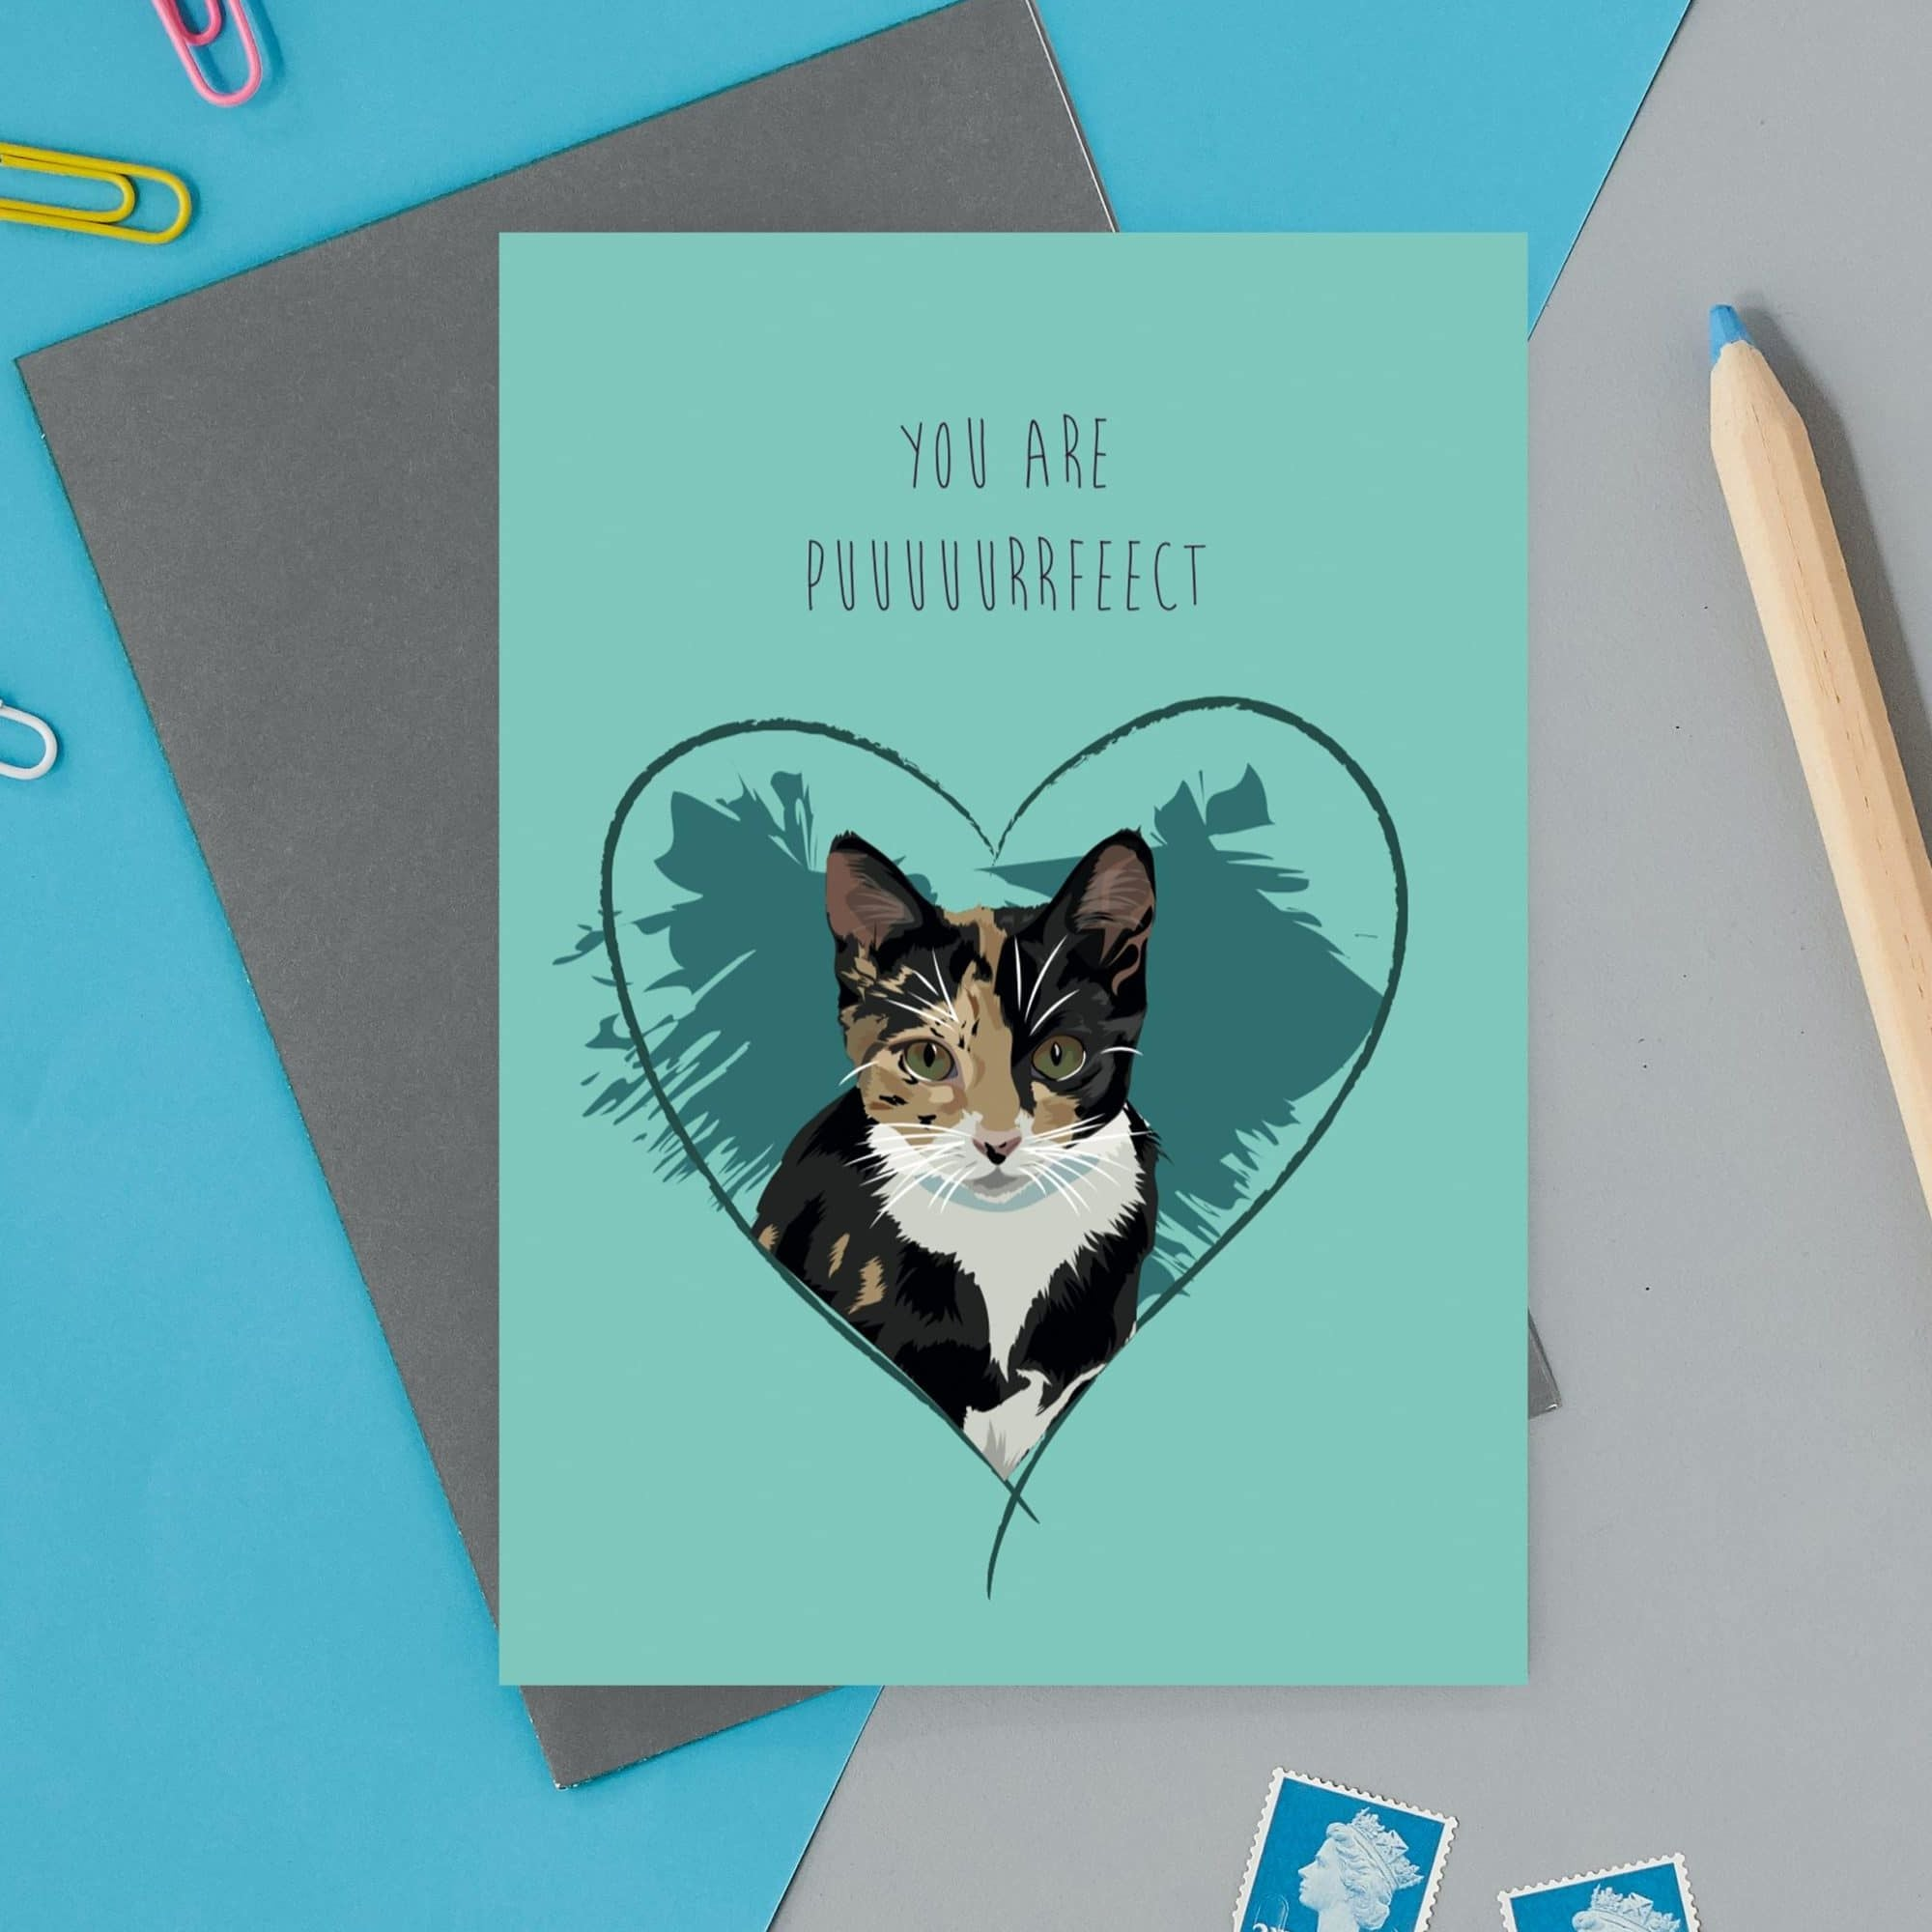 You are Puuurrfect Cat Card